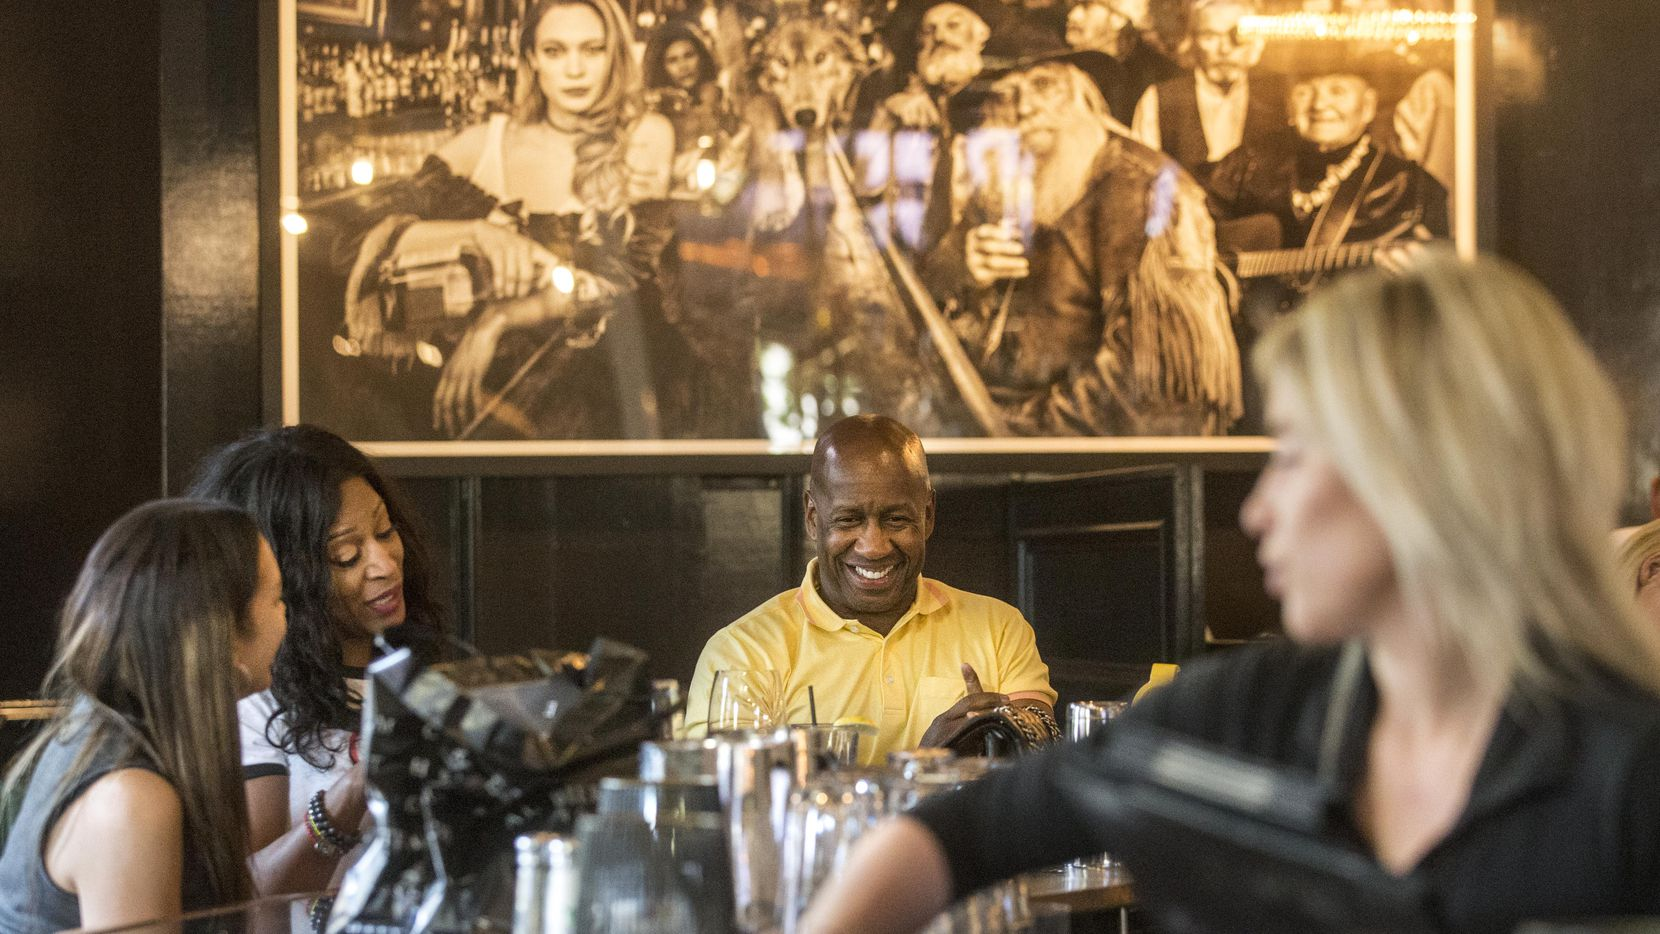 From left, Annette Watkins, Stephene (cq) Tolocko and C.A. Anderson, all of Dallas, talk while Abbey Jayne, an employee, wipes the bar clean at Al Biernat's in Dallas on Aug. 1, 2018. Al Biernat's has been participating in Restaurant Week for over 20 years. (Carly Geraci/The Dallas Morning News)